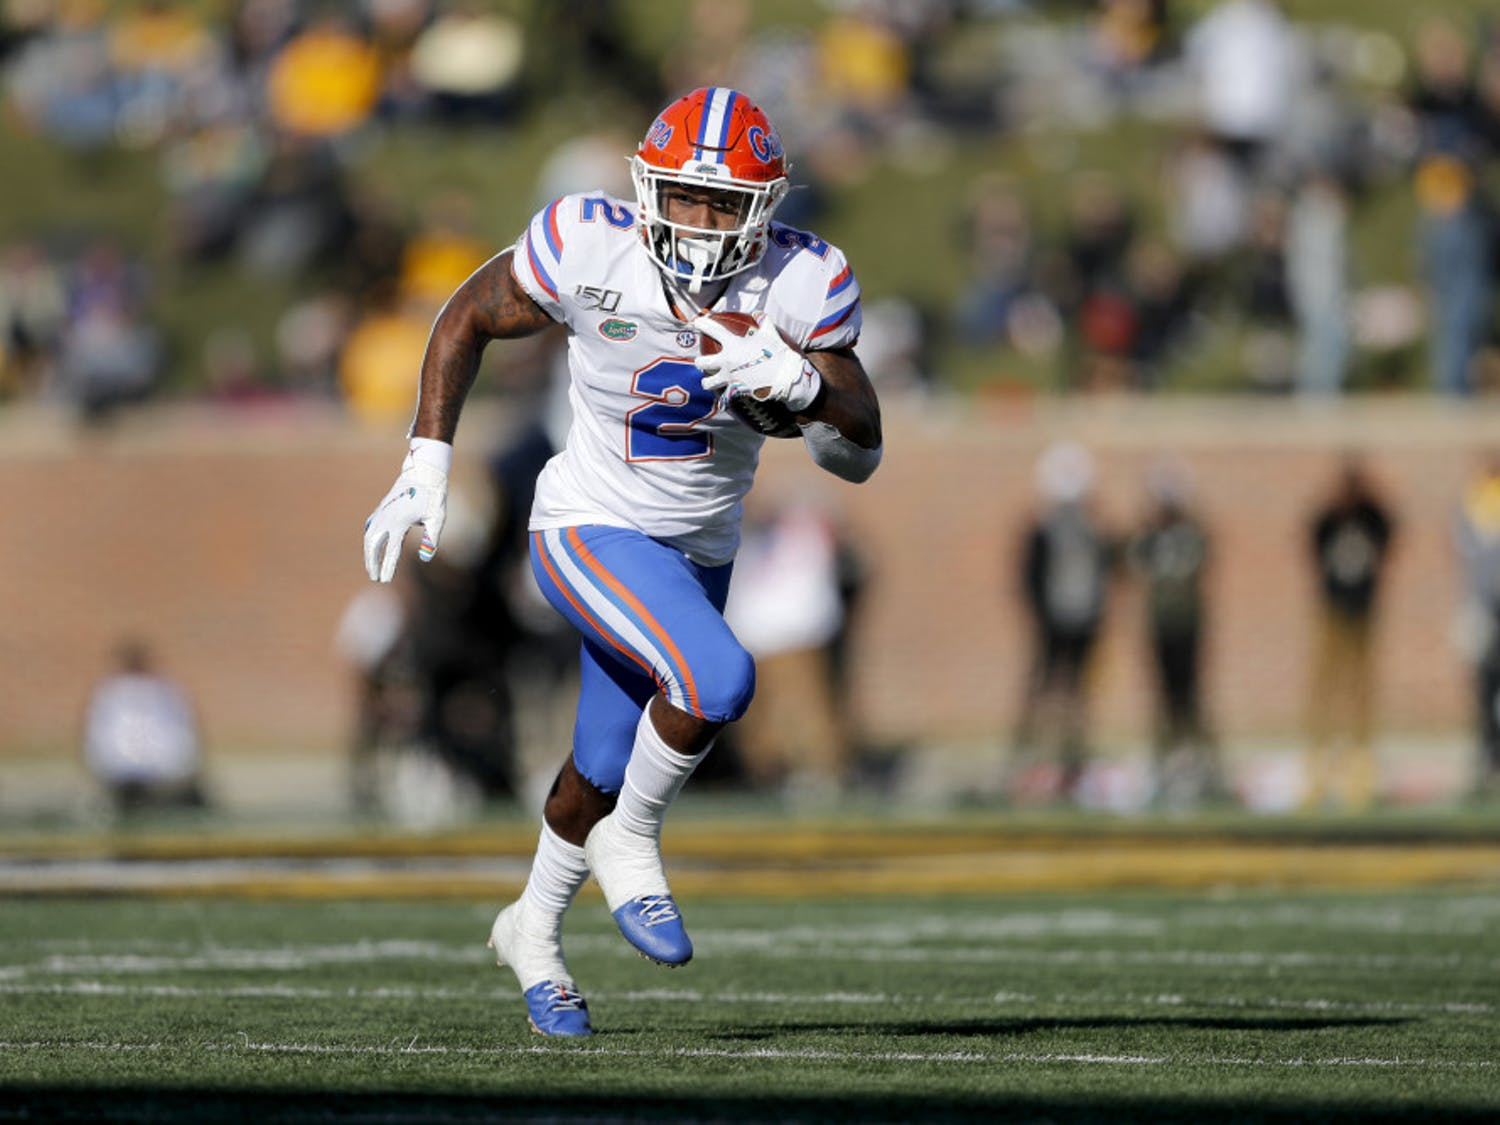 Florida running back Lamical Perine carries the ball for a first down during the second half of an NCAA college football game against Missouri, Saturday, Nov. 16, 2019, in Columbia, Mo. Florida won 23-6. (AP Photo/Jeff Roberson)